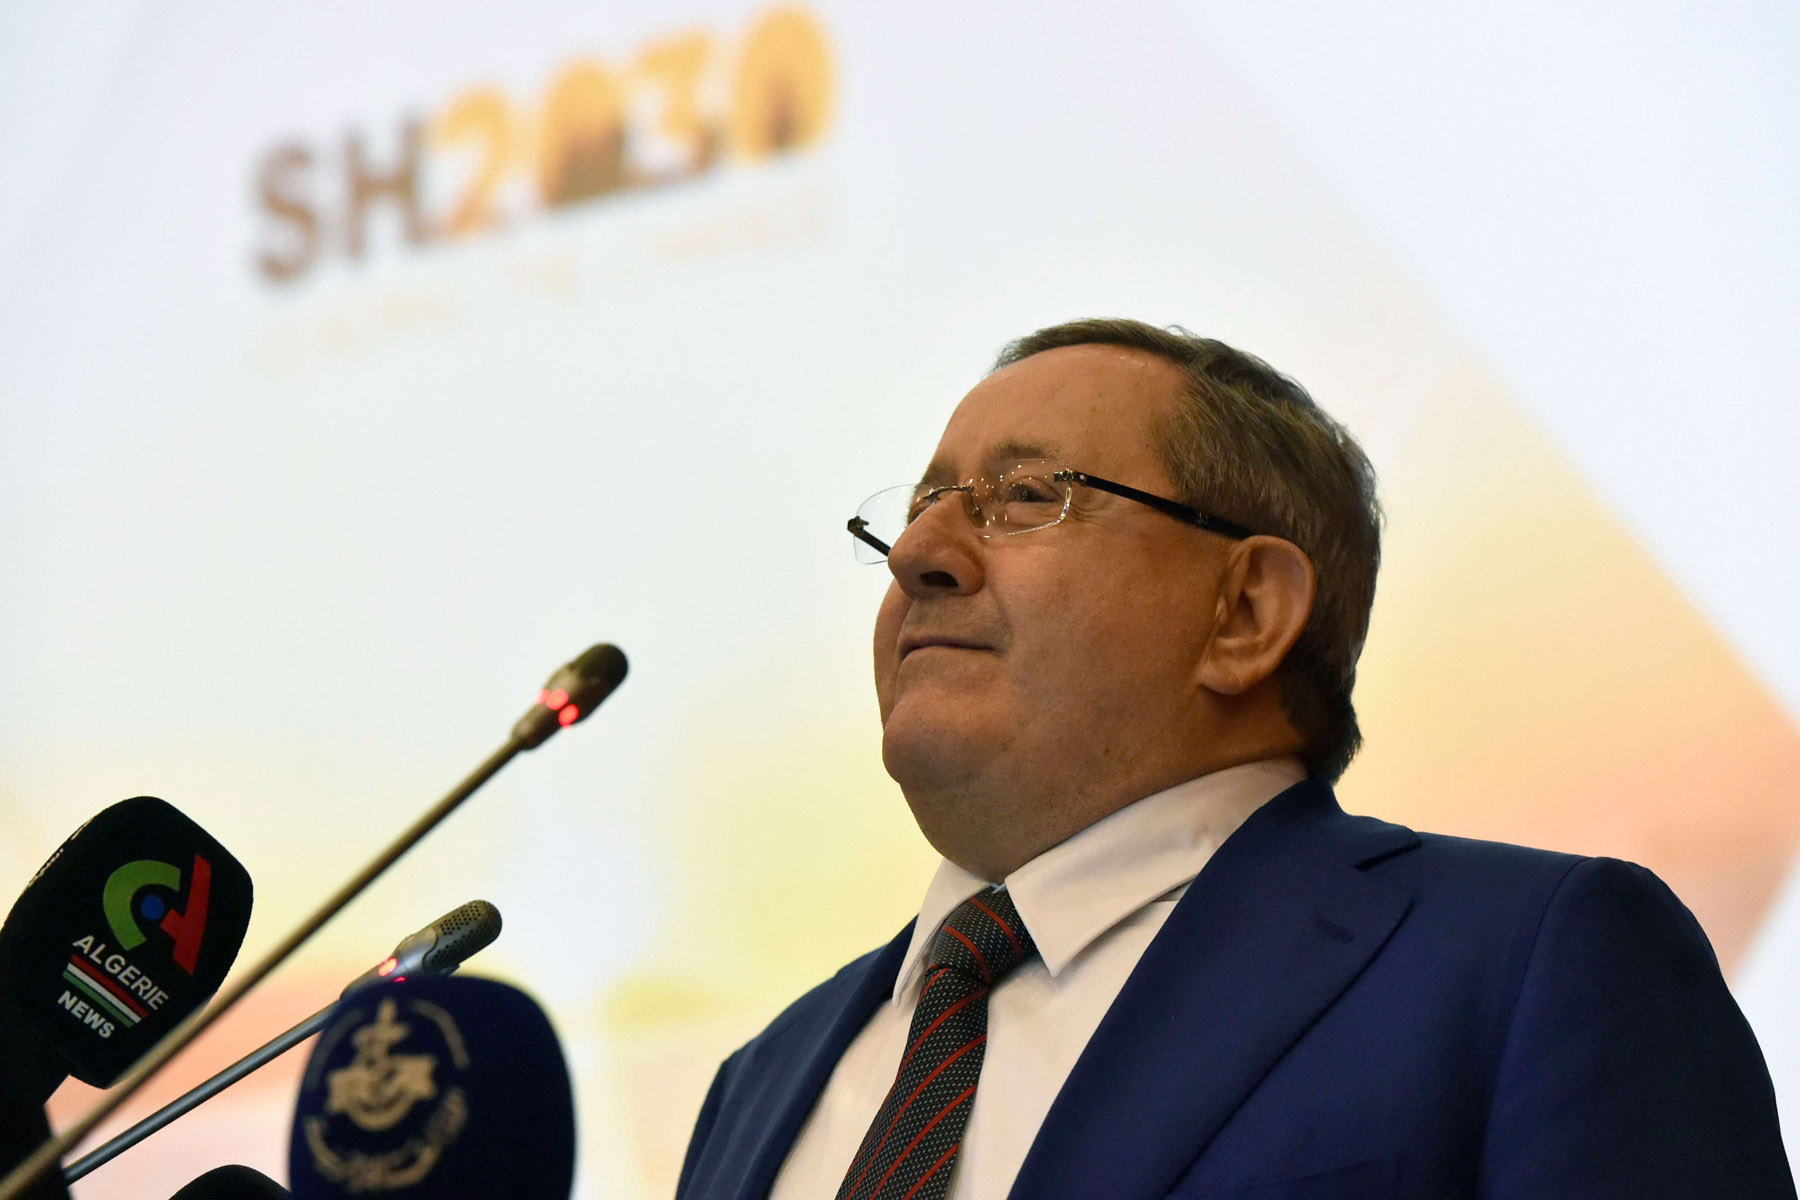 Sonatrach's CEO Abdelmoumen Ould Kaddour attends the strategic plan presentation of Sonatrach at the company's headquarters, last April. (AFP)